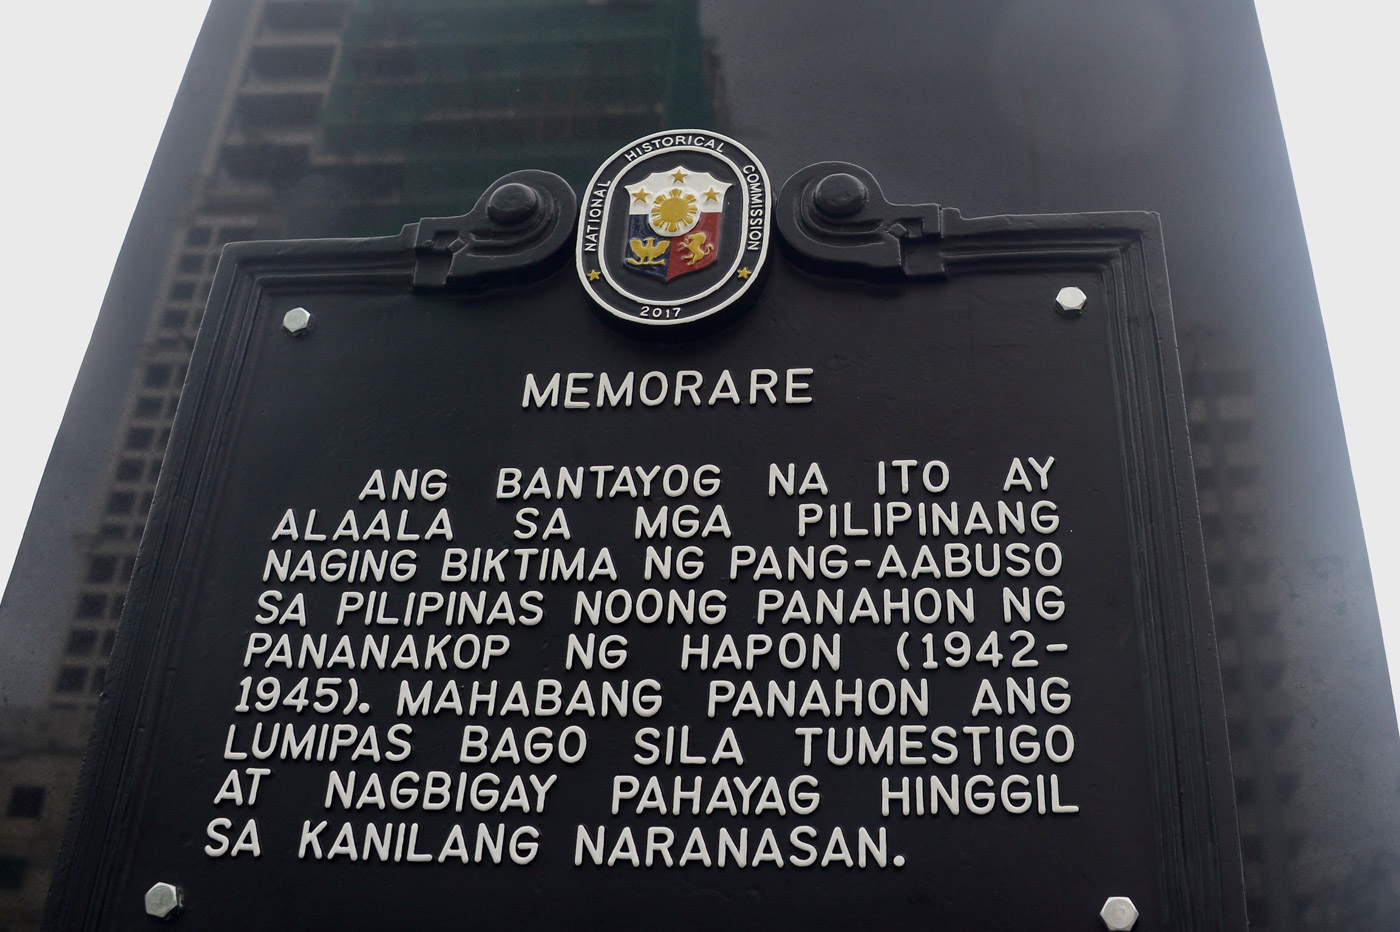 OFFICIAL MARKER. The comfort woman statue along Roxas Boulevard bears the official marker of the National Historical Commission of the Philippines. Photo by Angie de Silva/Rappler